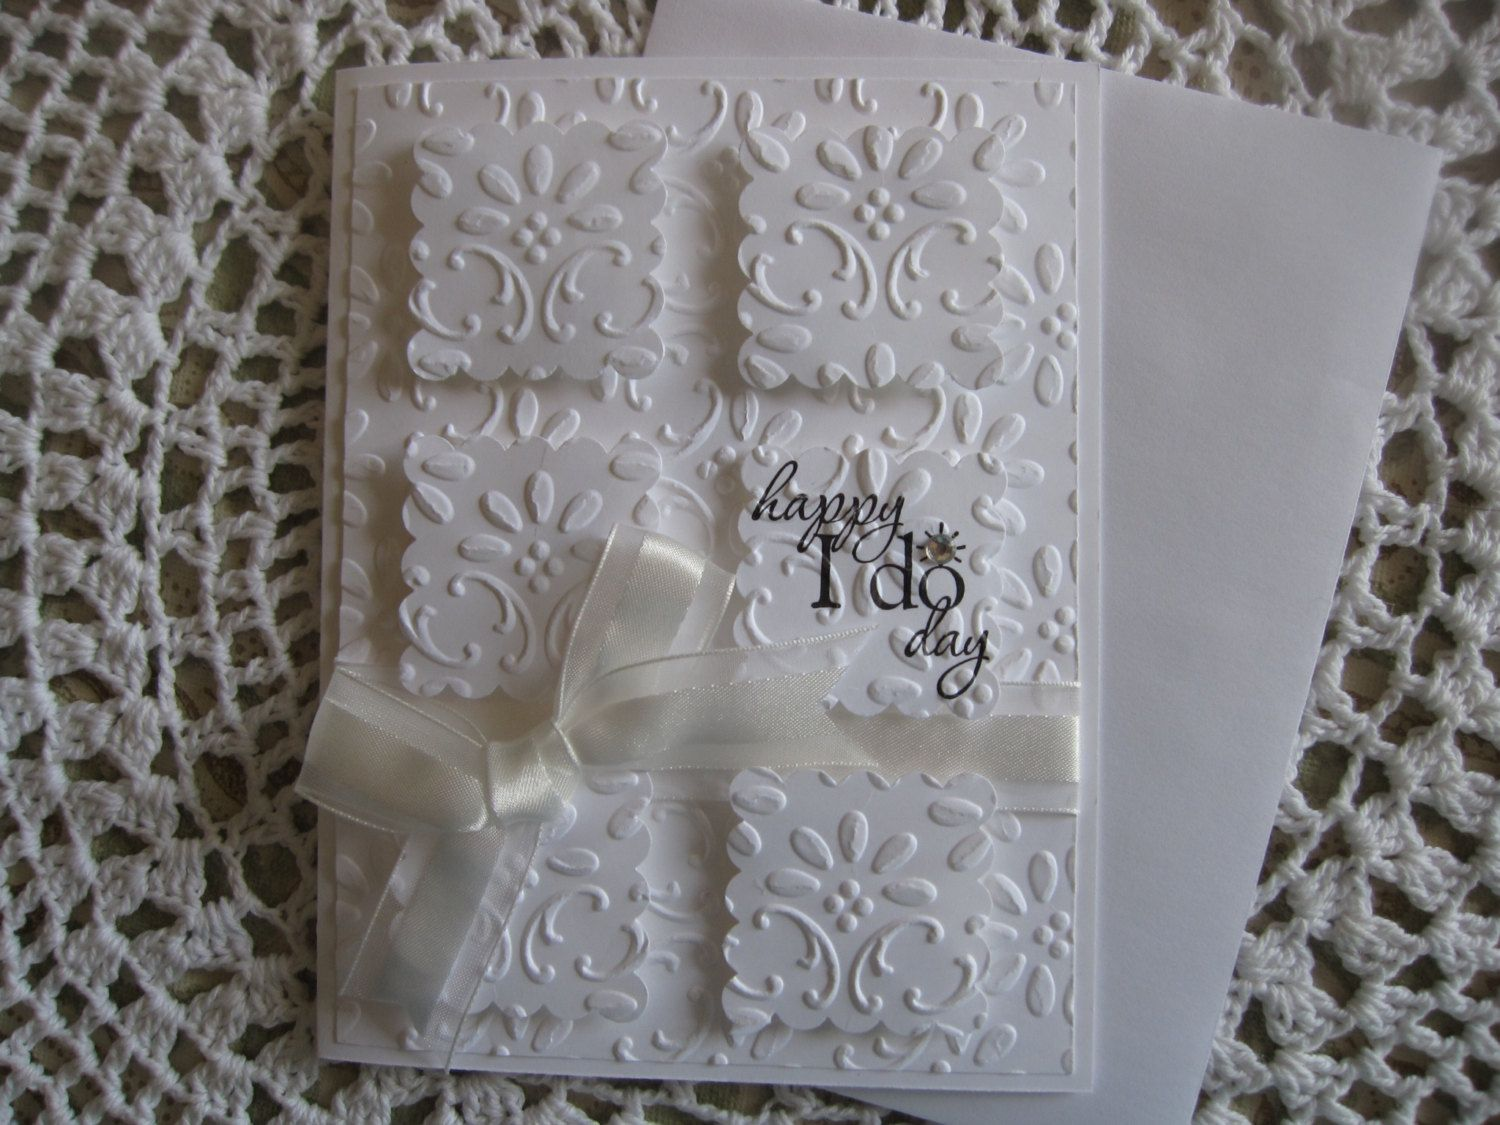 embossed wedding invitations Handmade Greeting Card Embossed Wedding Happy I Do Day